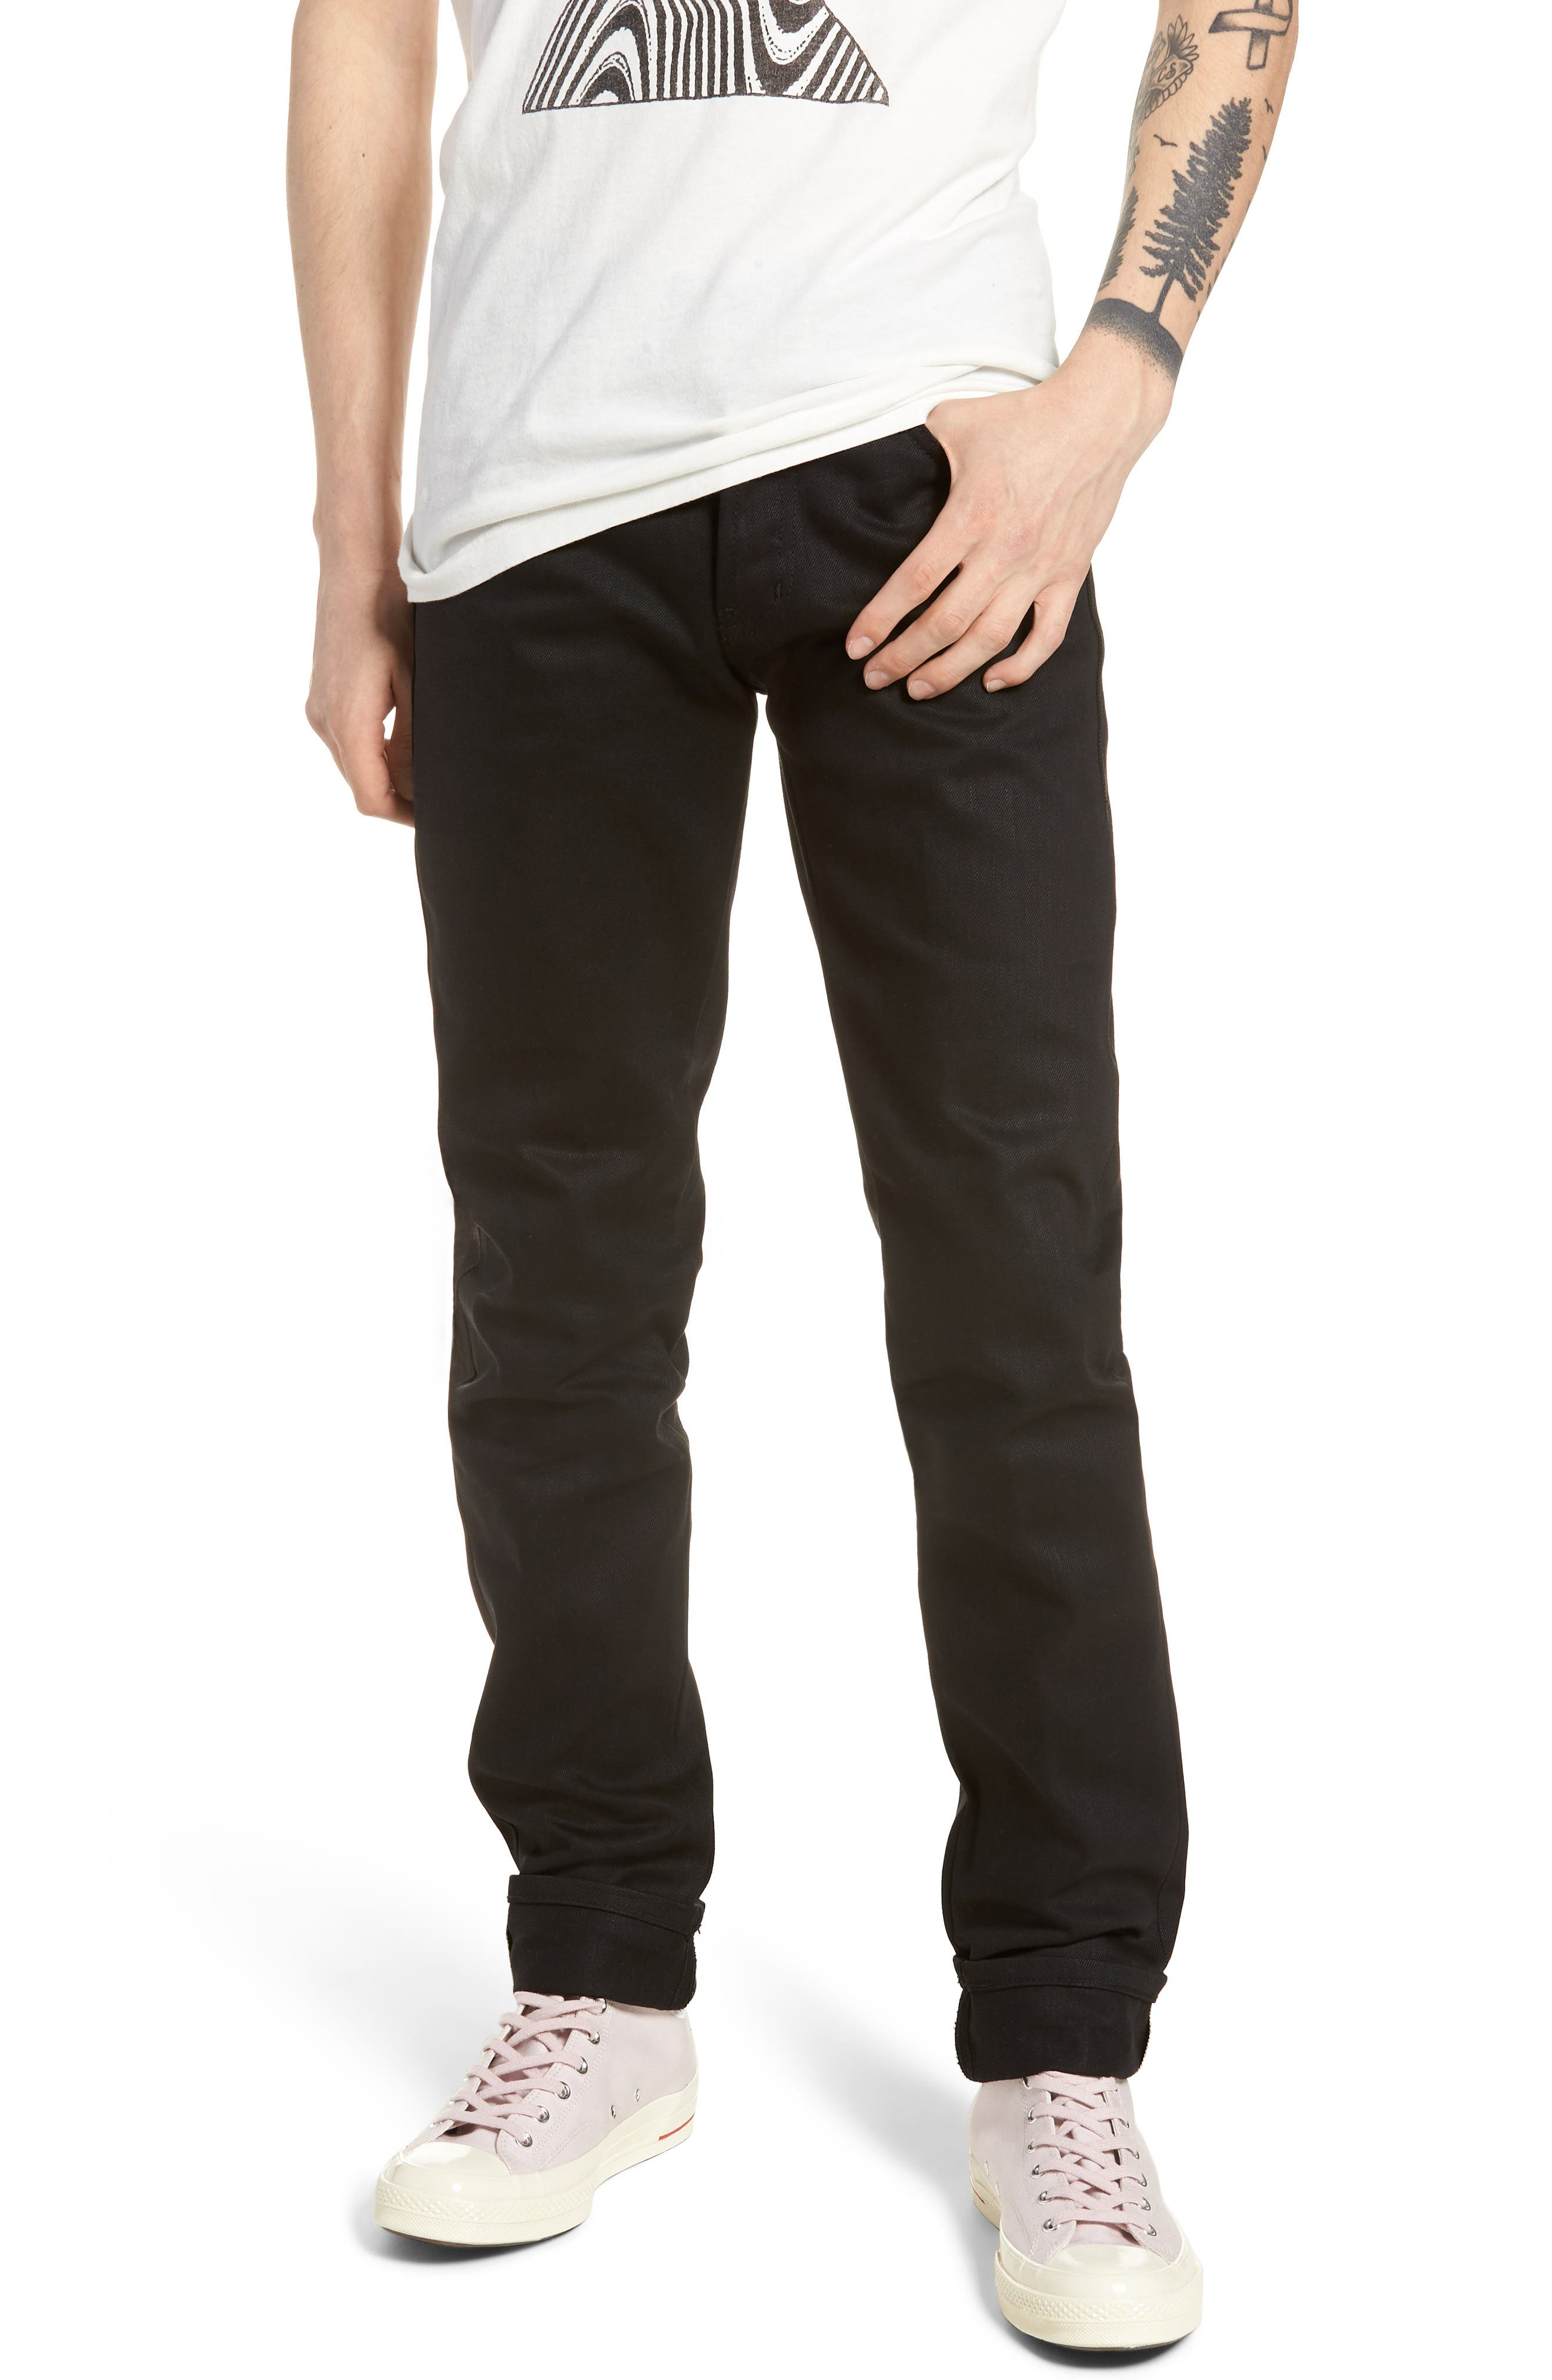 Naked & Famous Super Skinny Guy Skinny Fit Jeans,                             Main thumbnail 1, color,                             SOLID BLACK SELVEDGE